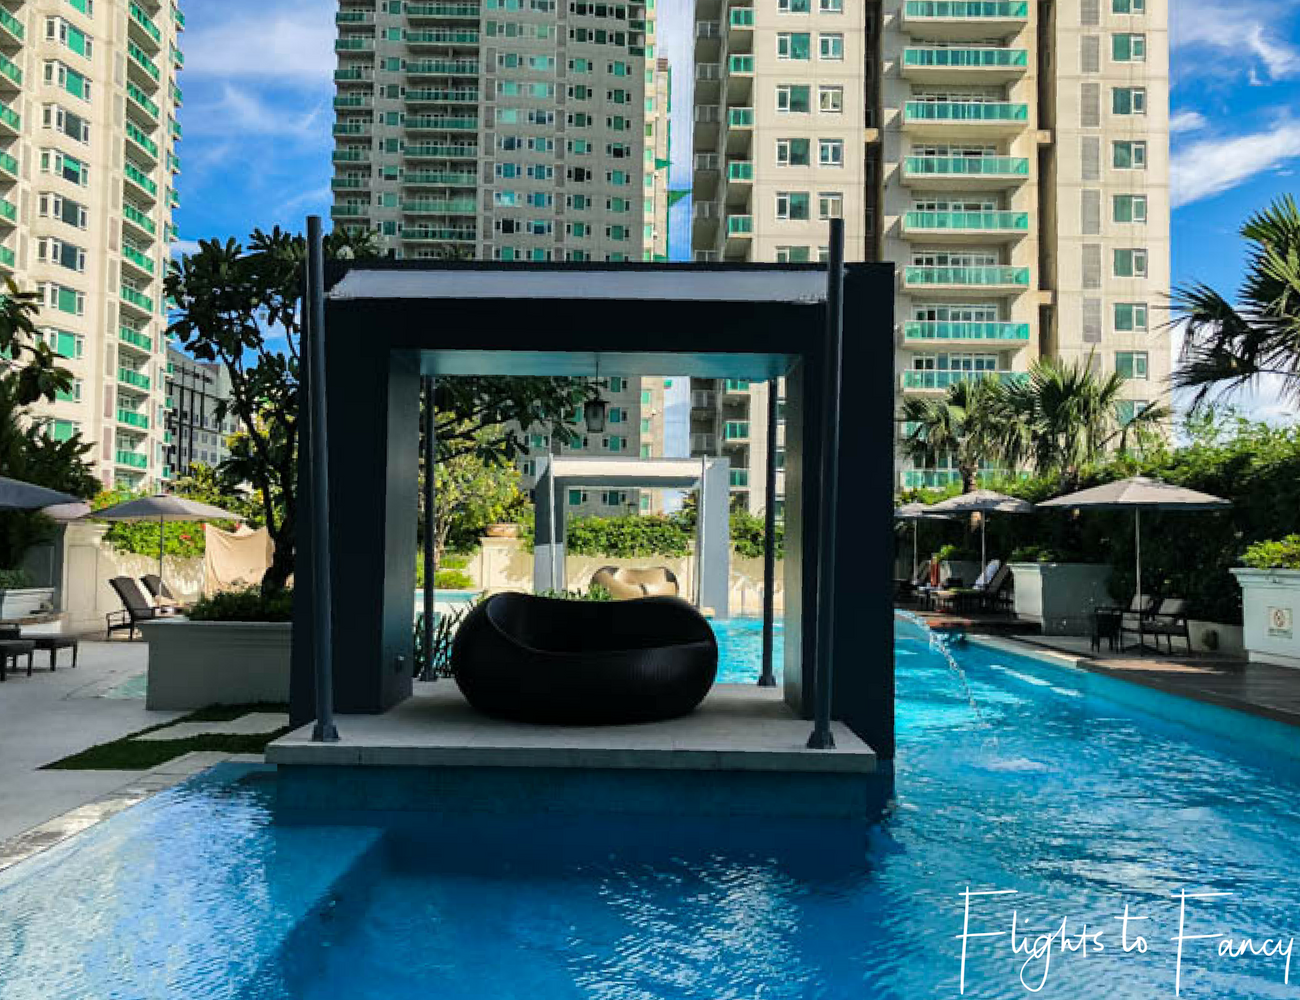 Flights To Fancy - Is Raffles Makati the best place to stay in Manila?